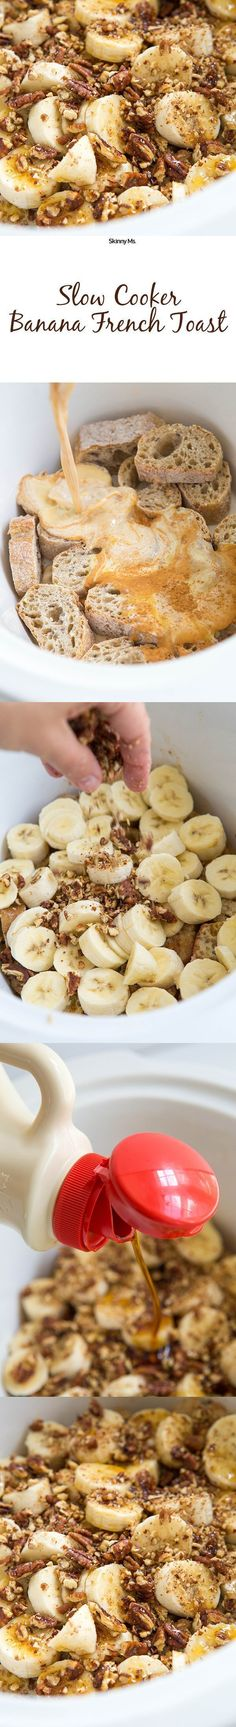 This recipe for Slow Cooker Banana Pecan French Toast is so decadent, but its actually made with all natural sweeteners! Clean-eating is so delicious. recipes for slow cooker Crock Pot Recipes, Crock Pot Cooking, Slow Cooker Recipes, Cooking Recipes, Vegetarian Crockpot Recipes, Crock Pots, Apple Recipes, Soup Recipes, Breakfast And Brunch